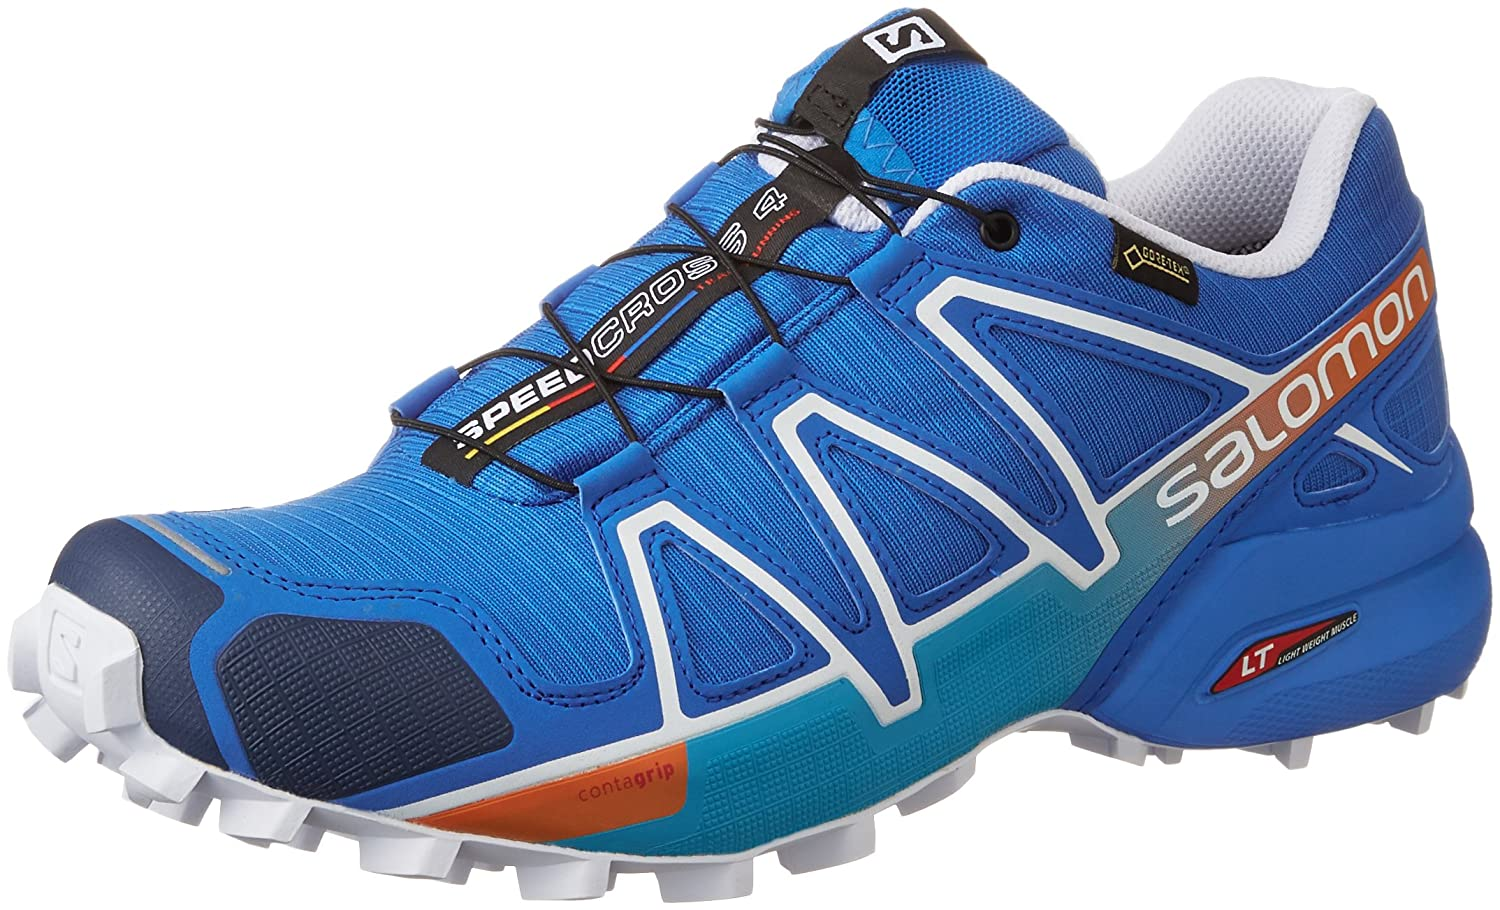 [サロモン] トレイルランニングシューズ SPEEDCROSS 4 GTX メンズ メンズ 27.5 Blue/White B01ETKGEHY BRIGHT BLUE/Union Blue/White 27.5 cm 27.5 cm|BRIGHT BLUE/Union Blue/White, 手紡ぎ 織り 羊毛 の ラメール:a578ca3c --- targaperformance.web5189.kinghost.net